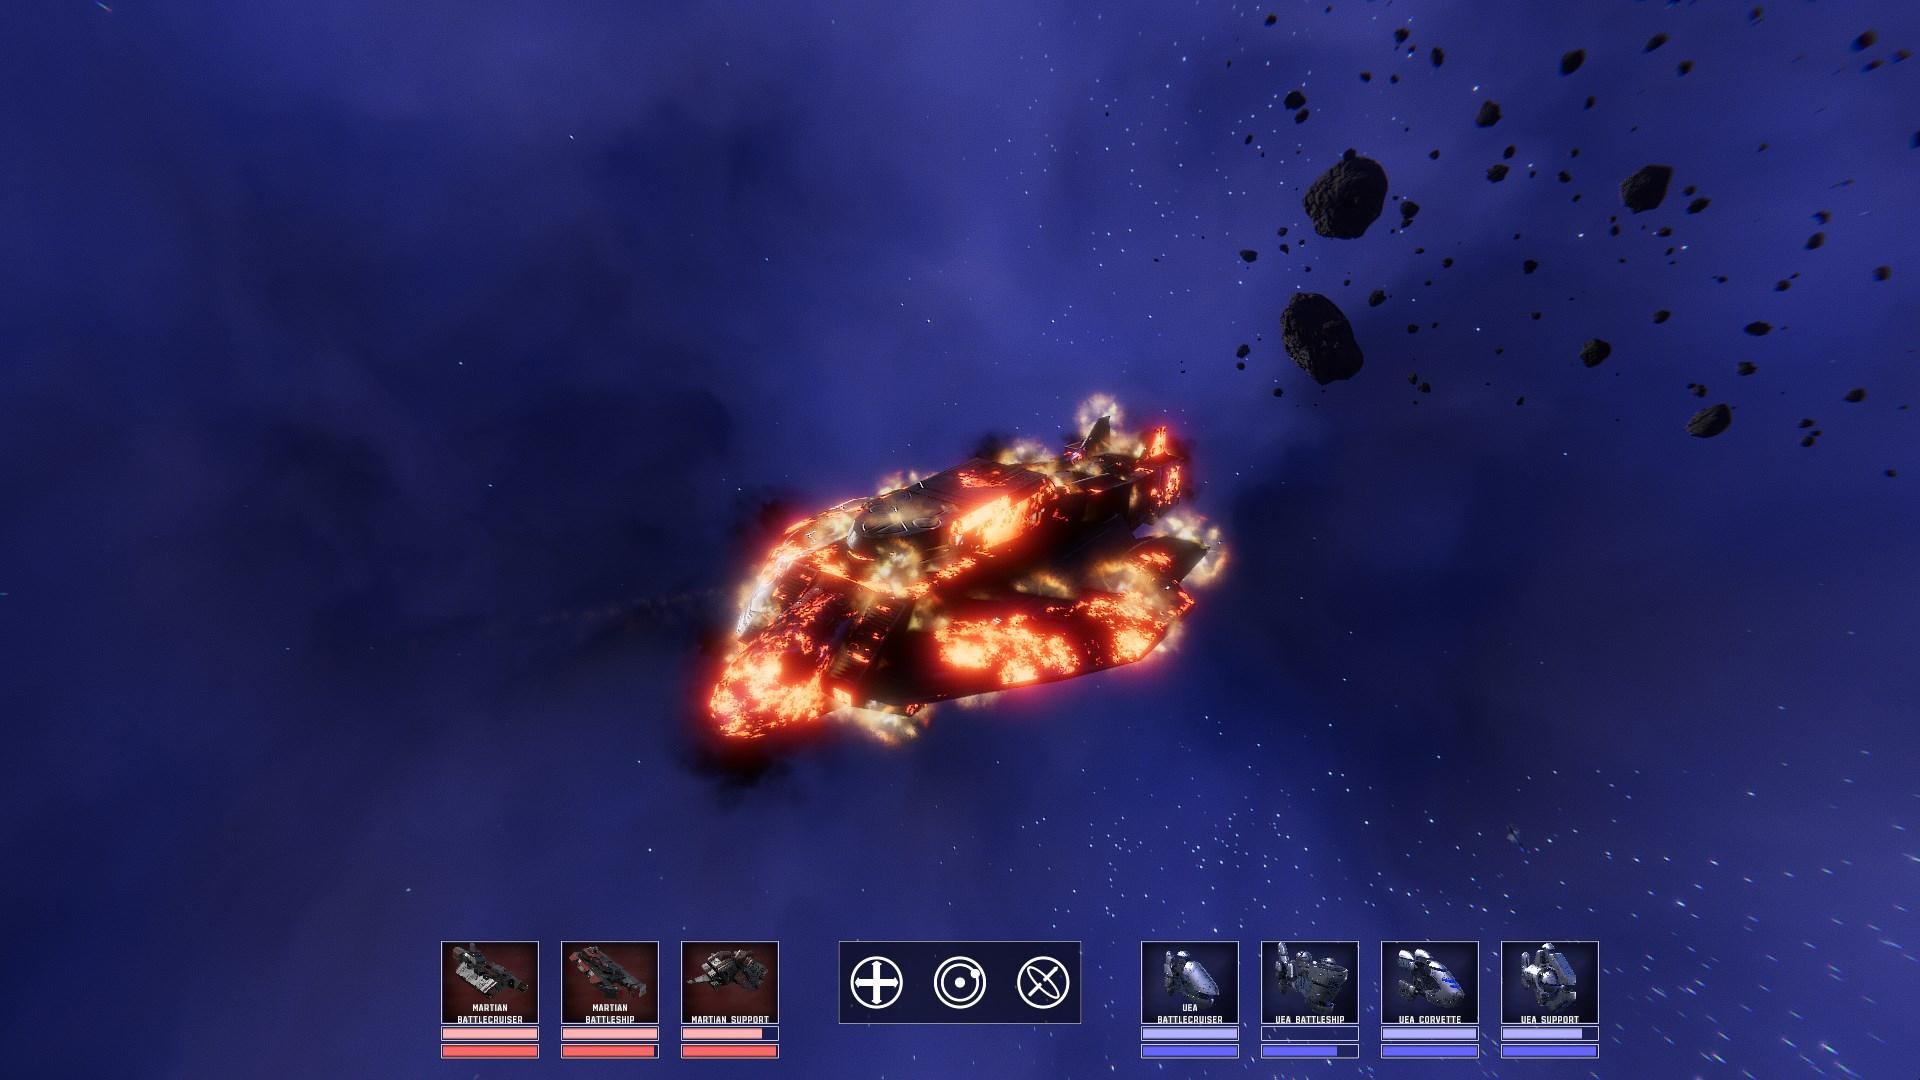 Corvette on fire